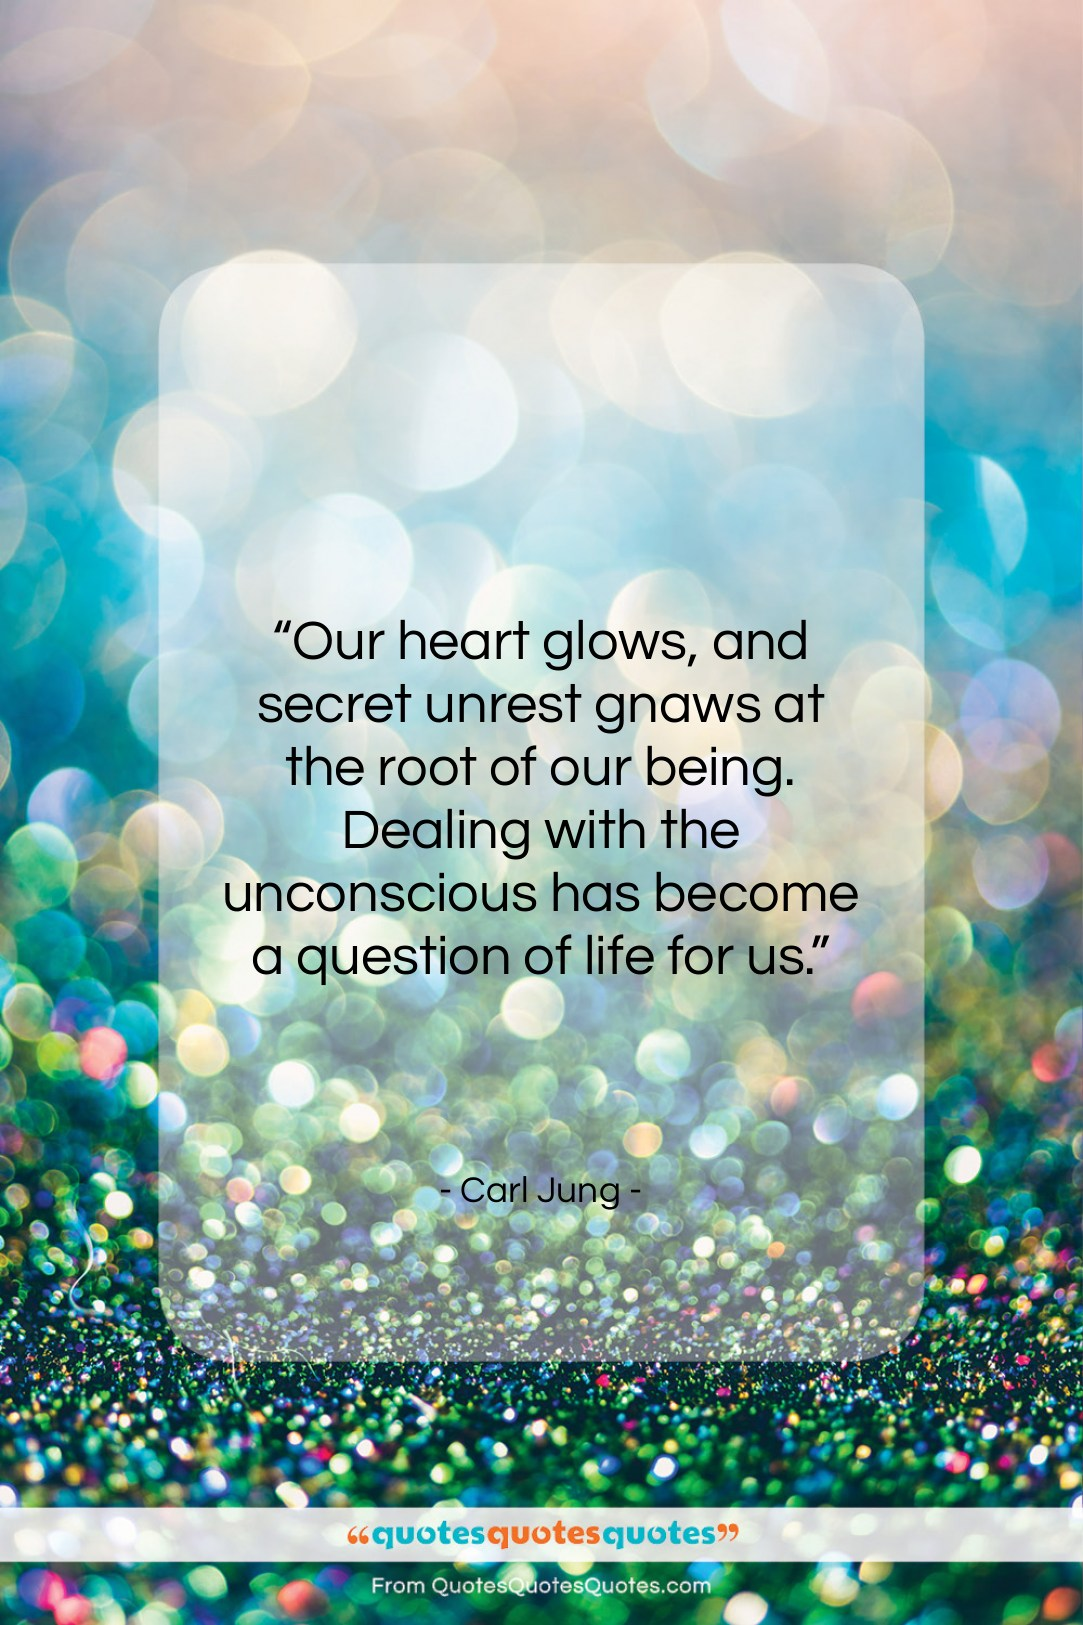 Get the whole Carl Jung quote: \